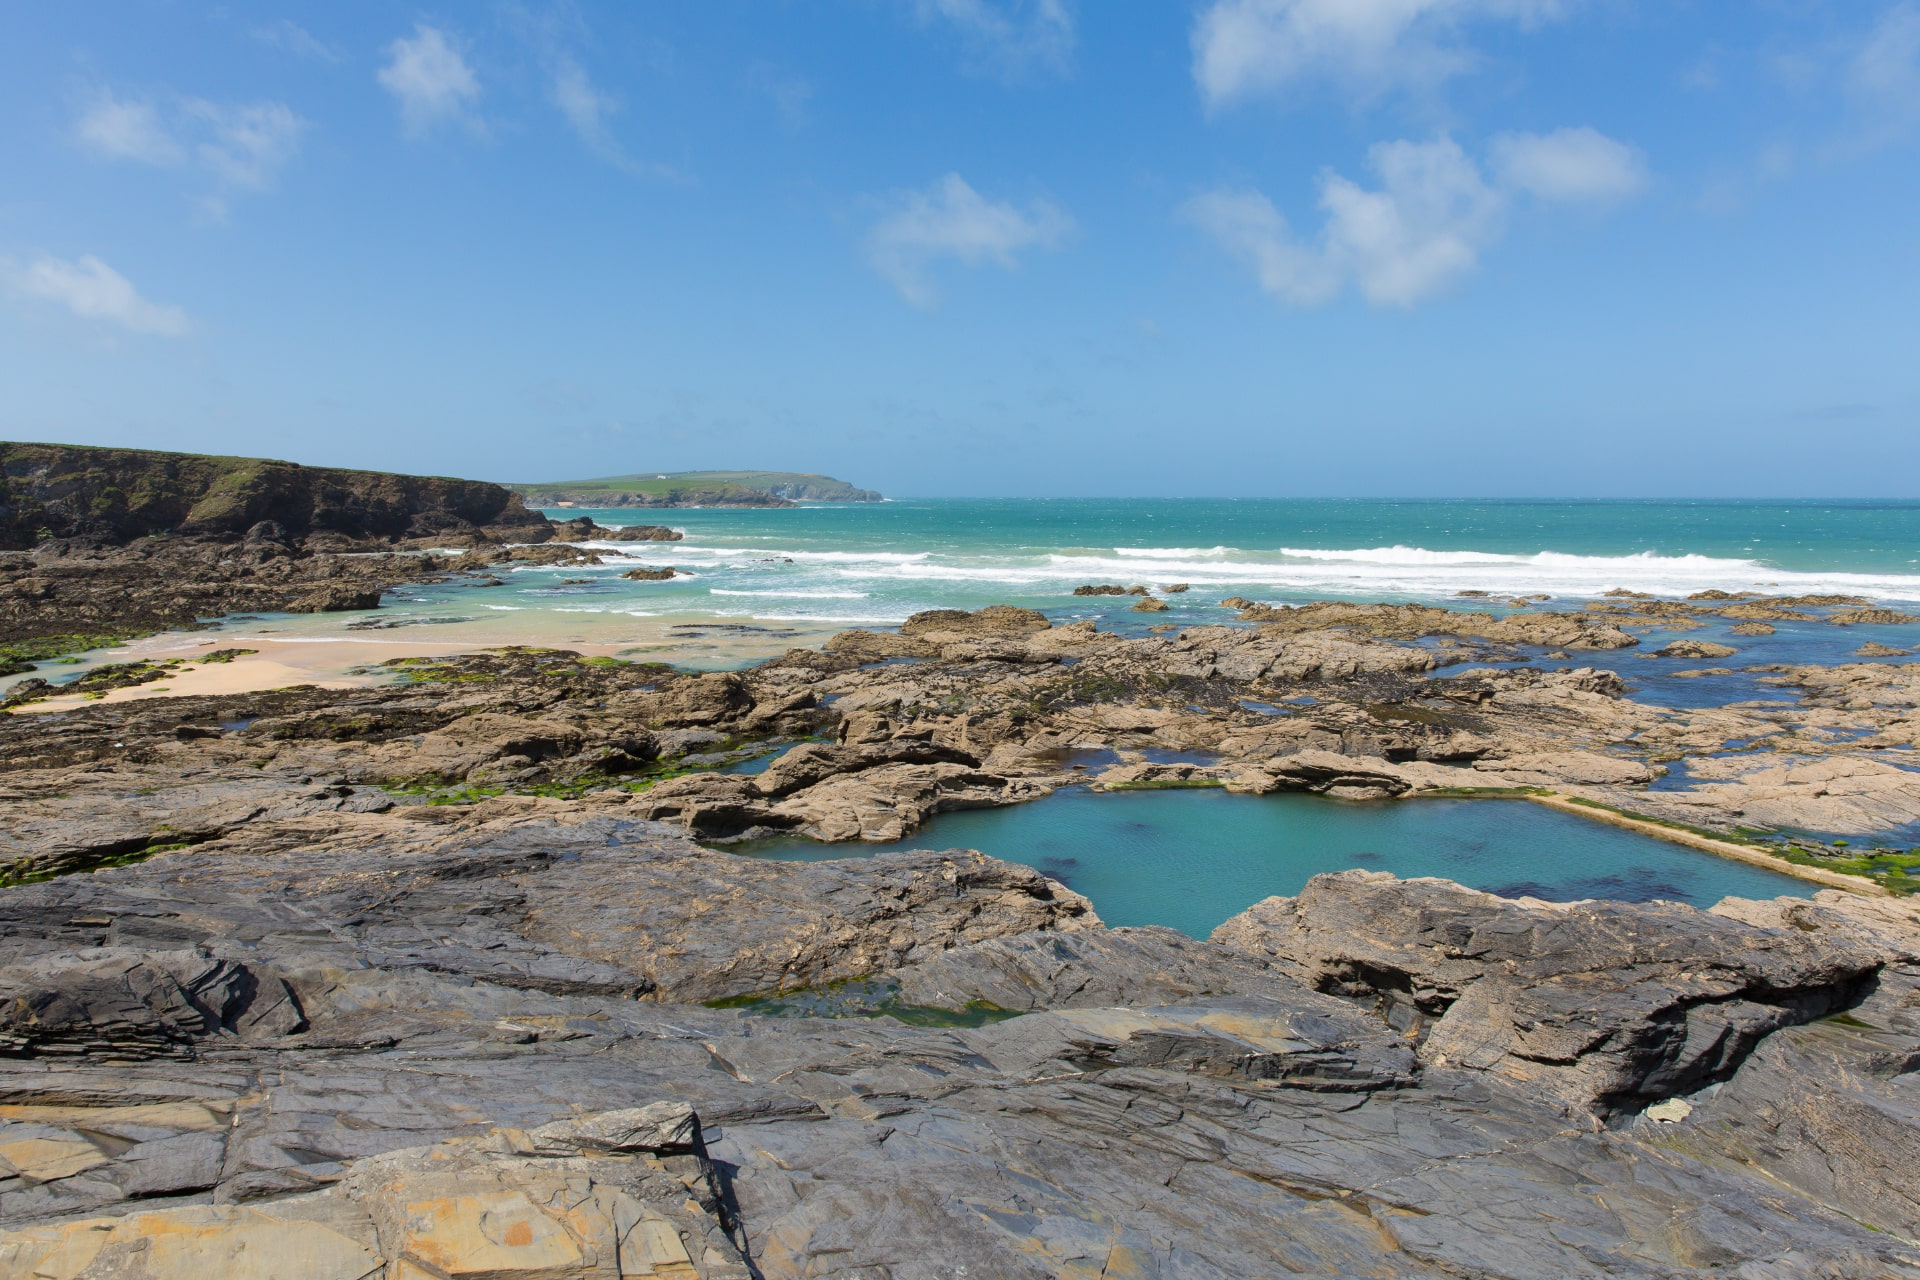 rockpools-on-beach-heading-out-to-sea-newtrain bay